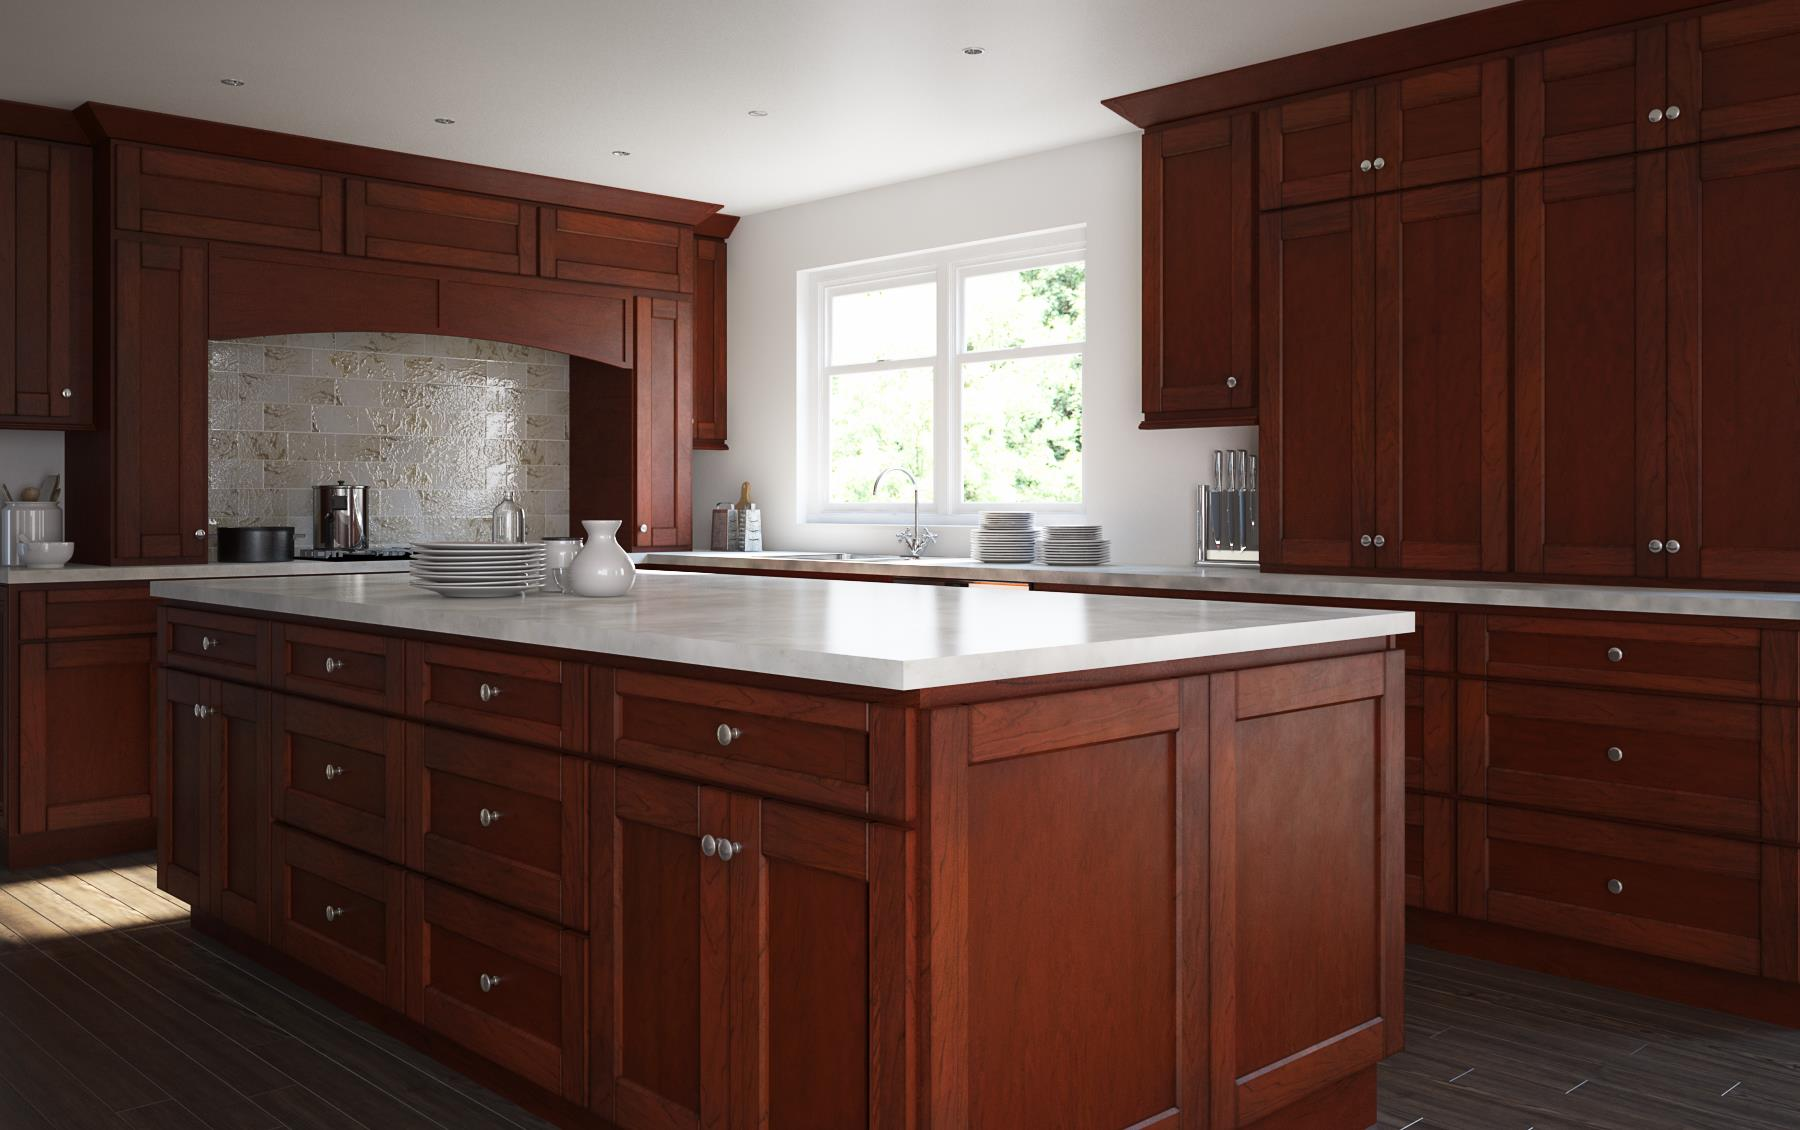 slate kitchen appliances black pull down faucet manchester shaker brandywine cabinets - willow ...